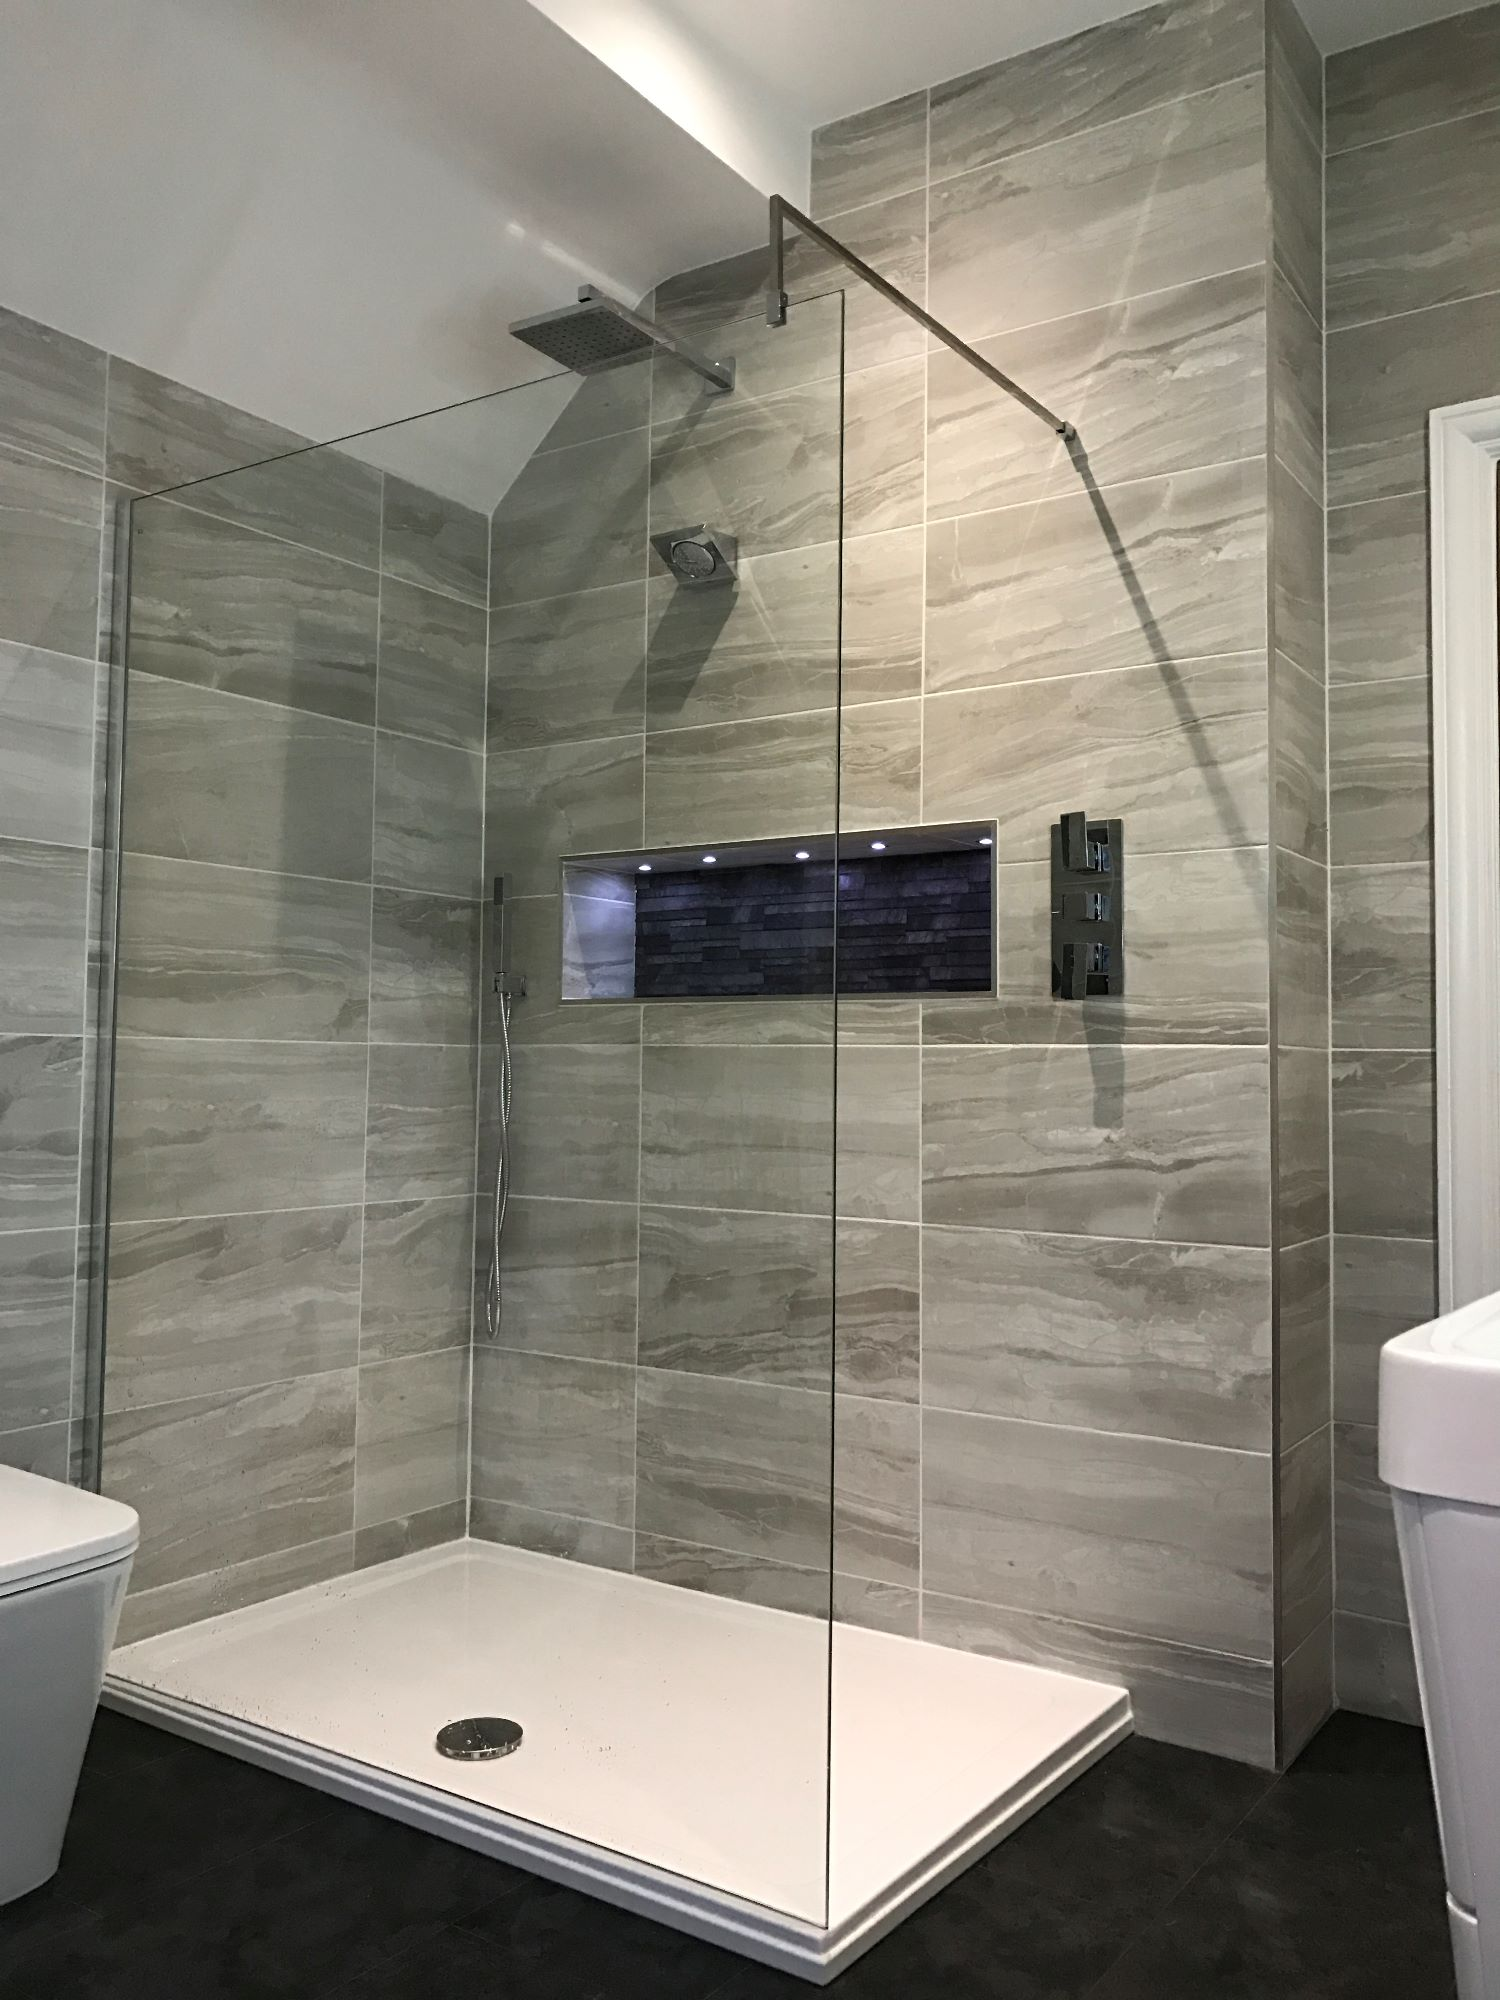 Justin wedgbury bathroom design supply and fitting pictures birmingham home improvement services Bathroom design and supply ltd bolton